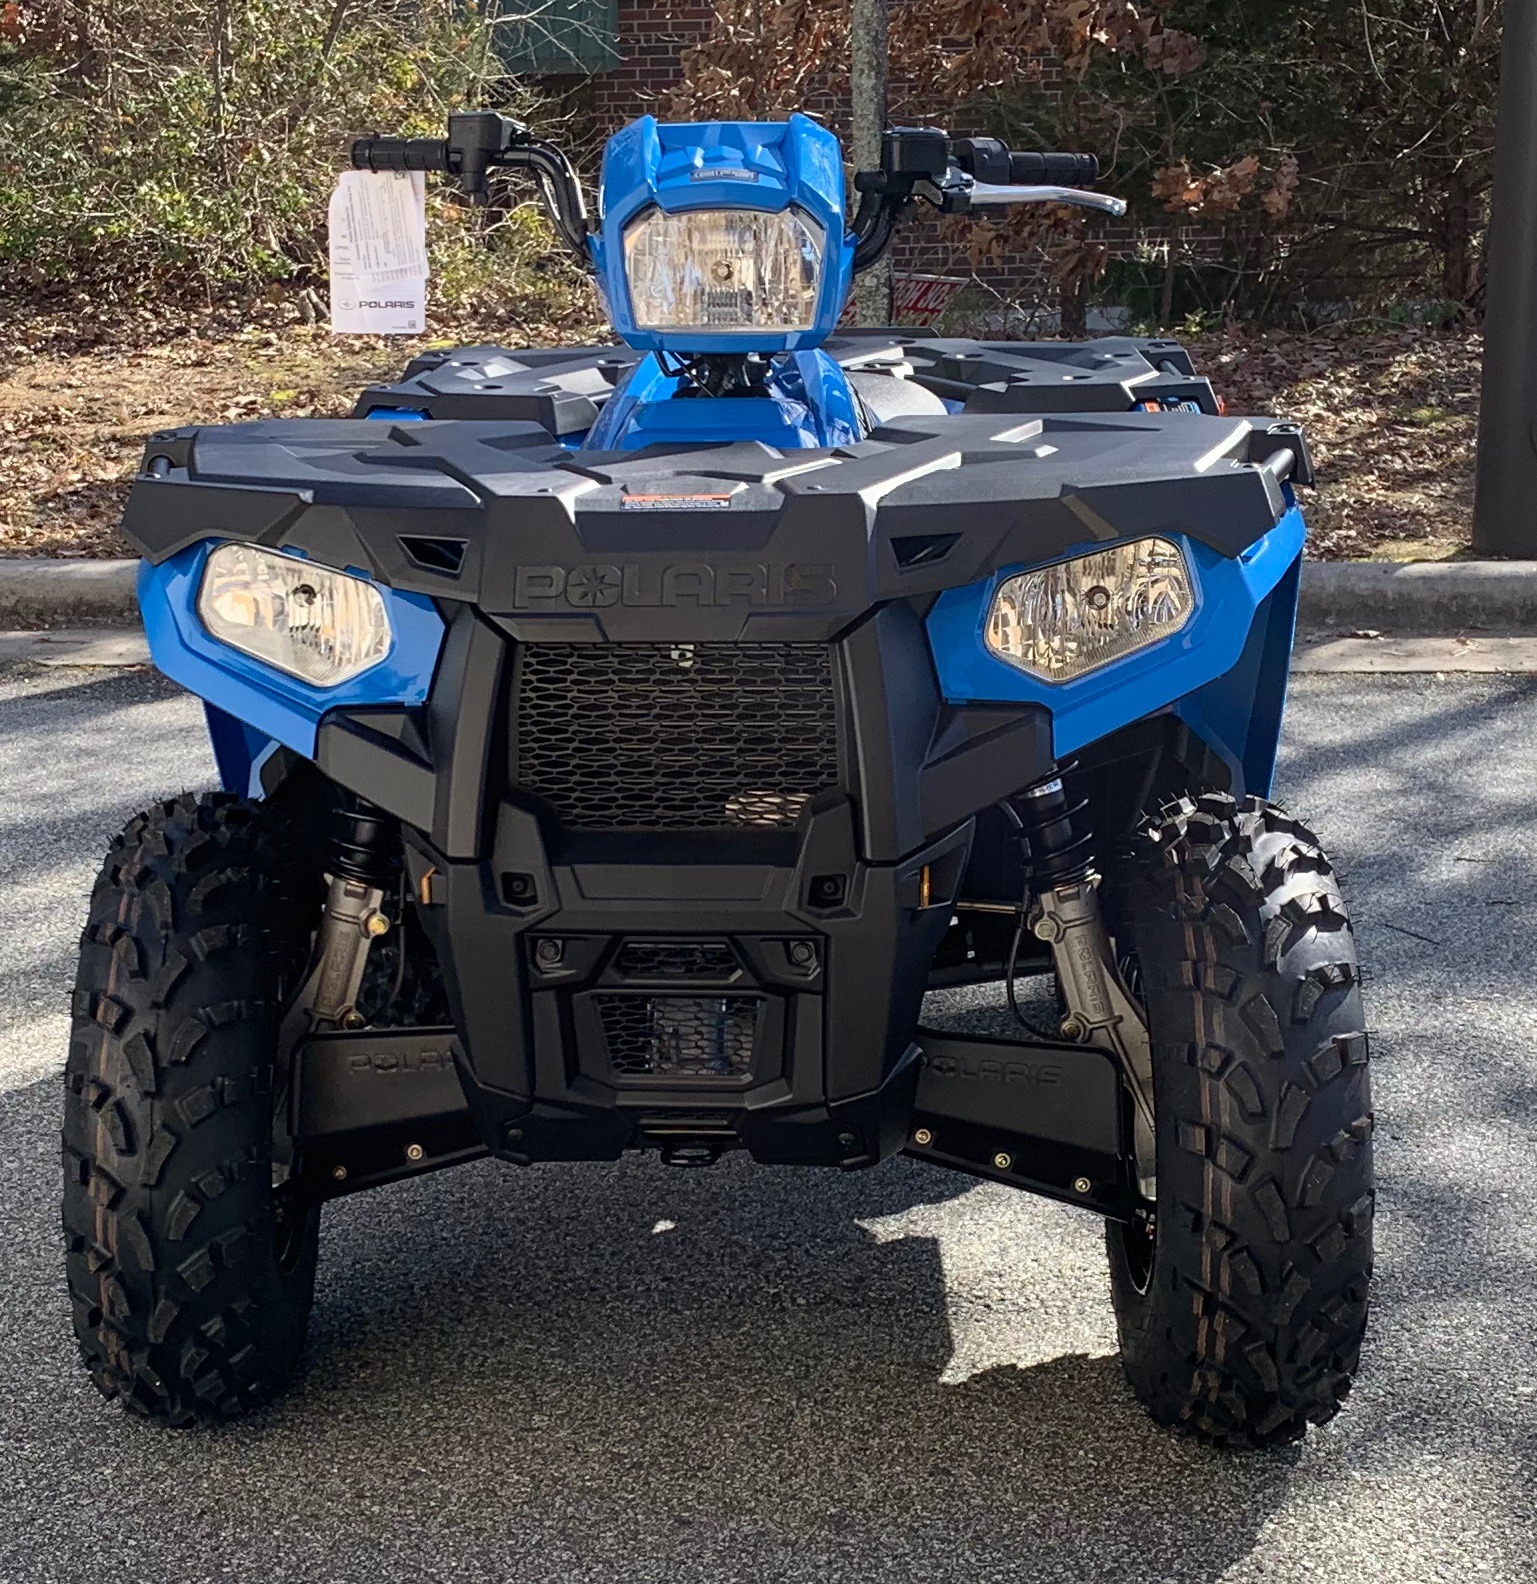 2019 Polaris Sportsman 570 EPS in High Point, North Carolina - Photo 5